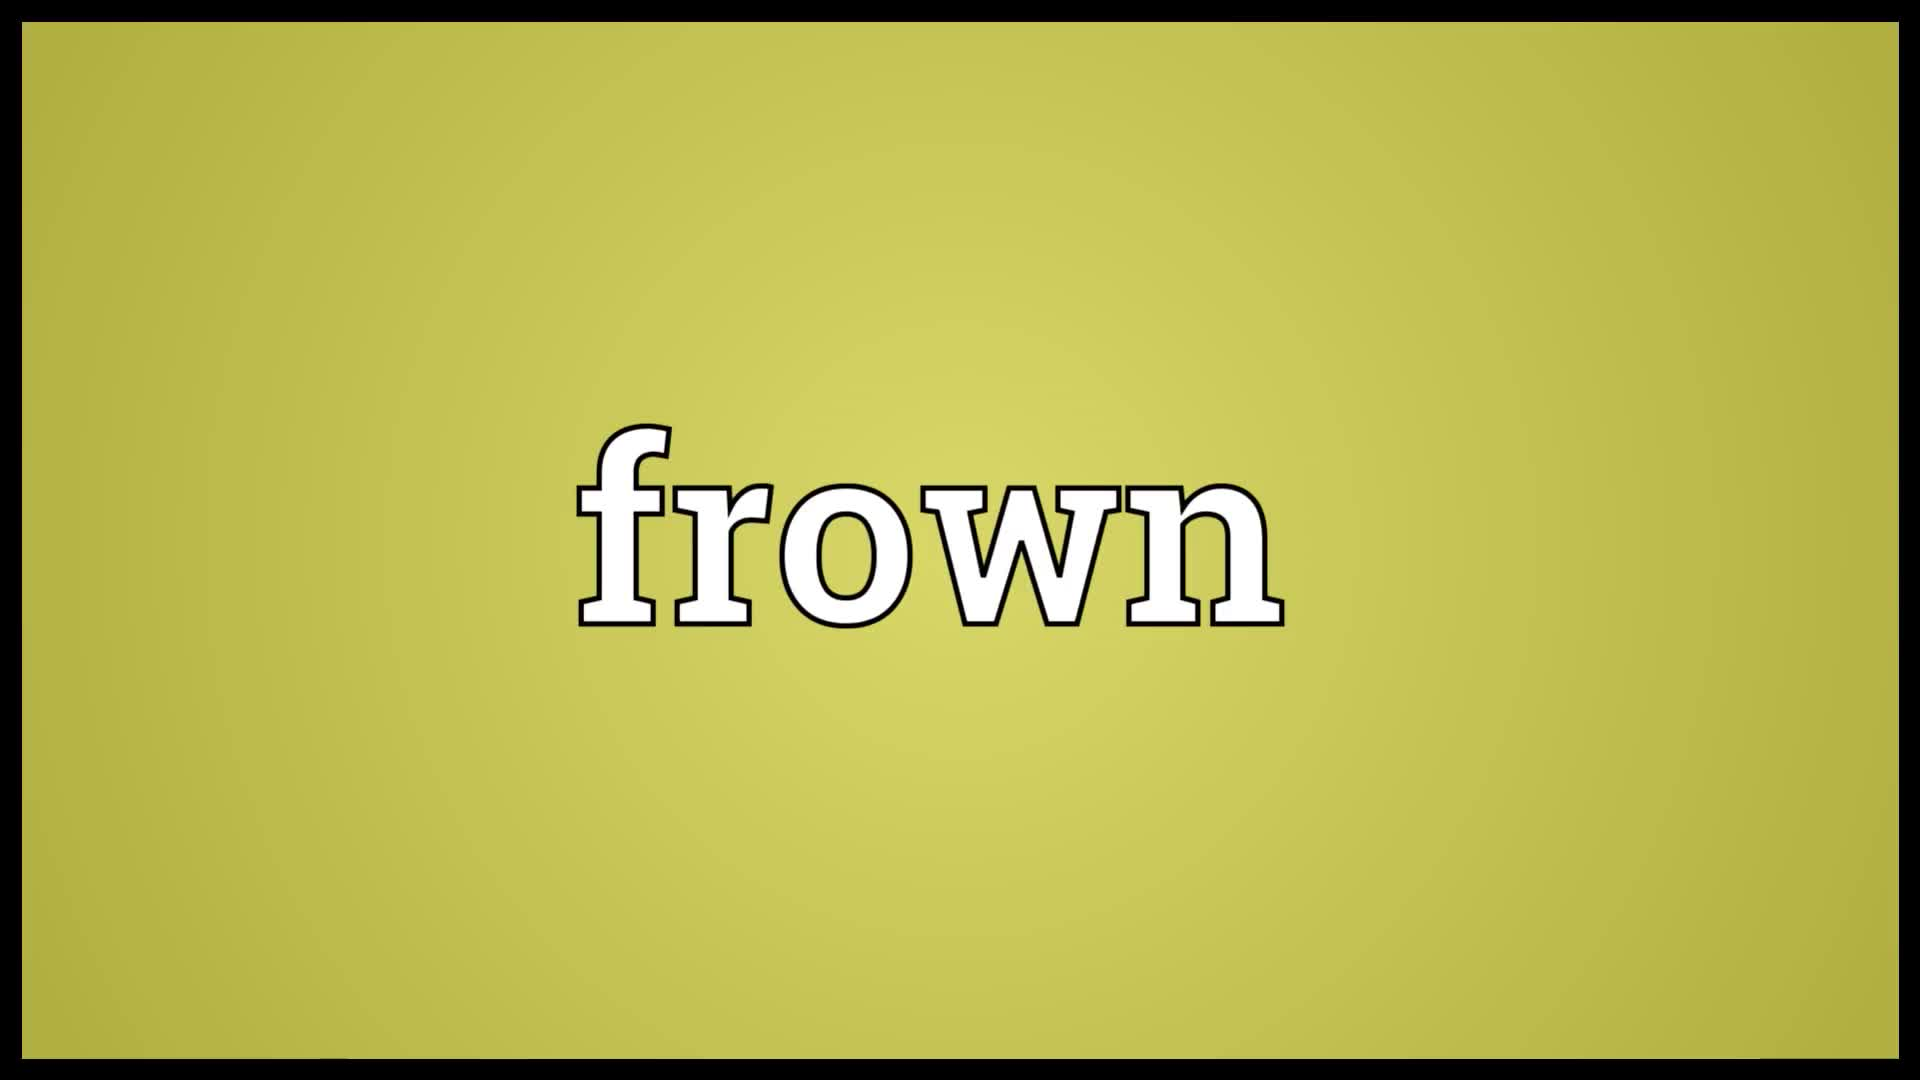 definition, frown, frown definition, frown meaning, frown pronunciation, pronunciation, Frown Meaning GIFs